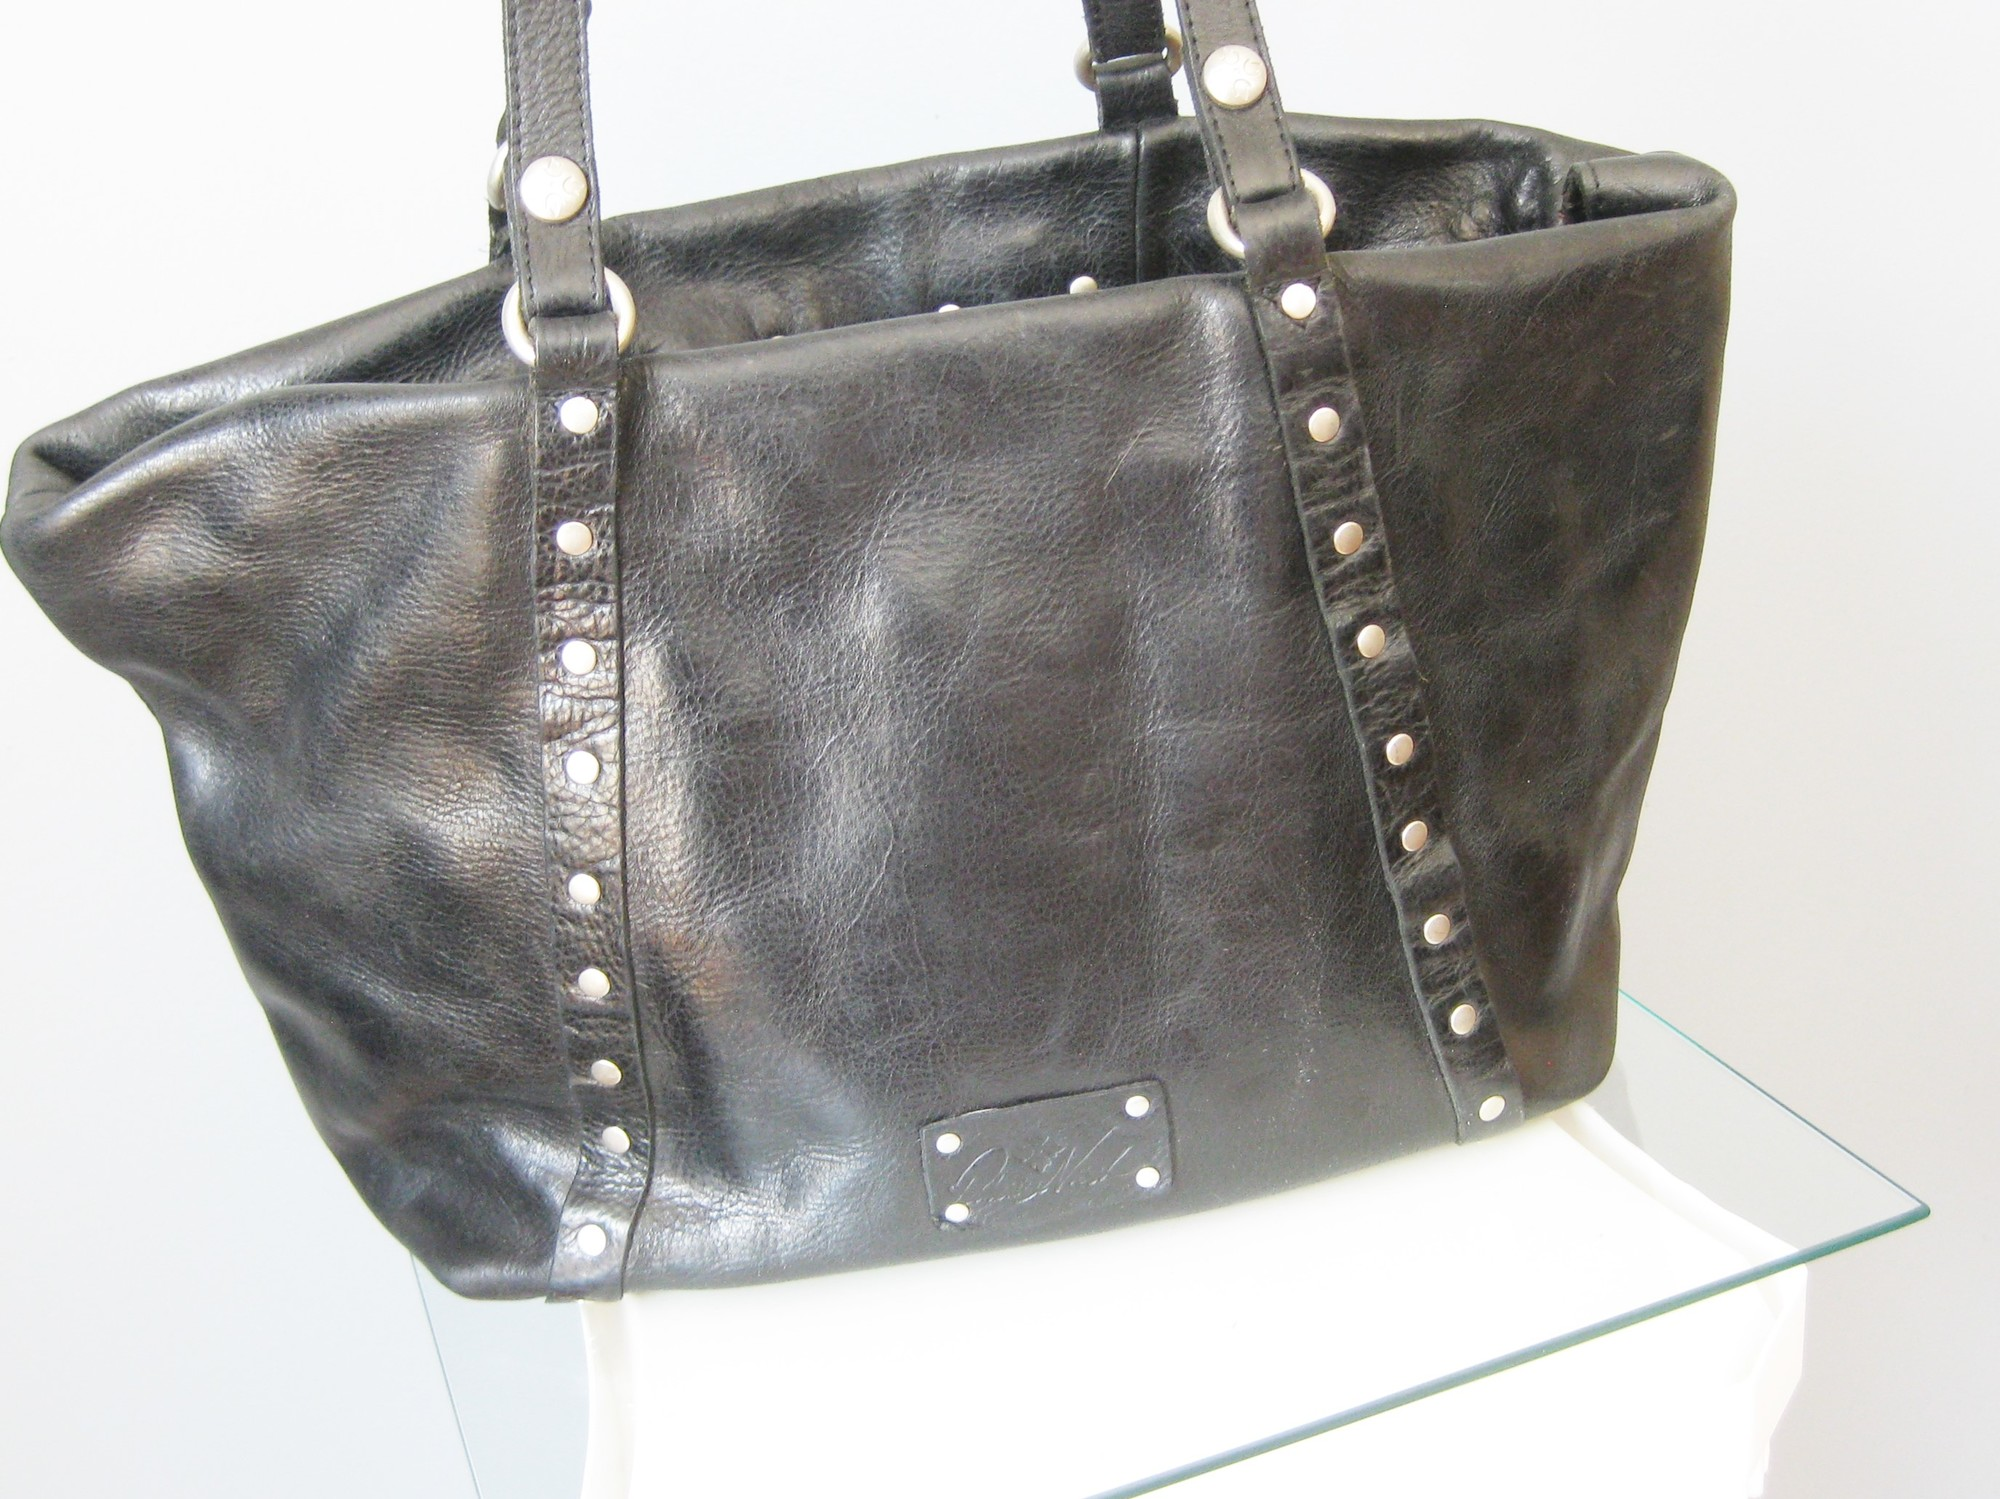 Awesome leather tote by<br /> Patricia Nash<br /> Silvi Model<br /> This work horse bag is made of tough black leather and has silver tone rivets attaching the double straps.<br /> Bag and deep this bag will hold it all nicely.<br /> It has a metal plate/turn lock closure and unfortunately one of the turn lock parts is missing. Please see the photos.<br /> You may carry this bag with the top edge folded down , leaving it unlocked and so this might work for you.<br /> You can still secure the top nicely with the one turnlock that is still present<br /> otherwise super condition, clean inside and out.<br /> <br /> 13.5in x 10in x 7in at the bottom<br /> <br /> thanks for looking!<br /> #38096